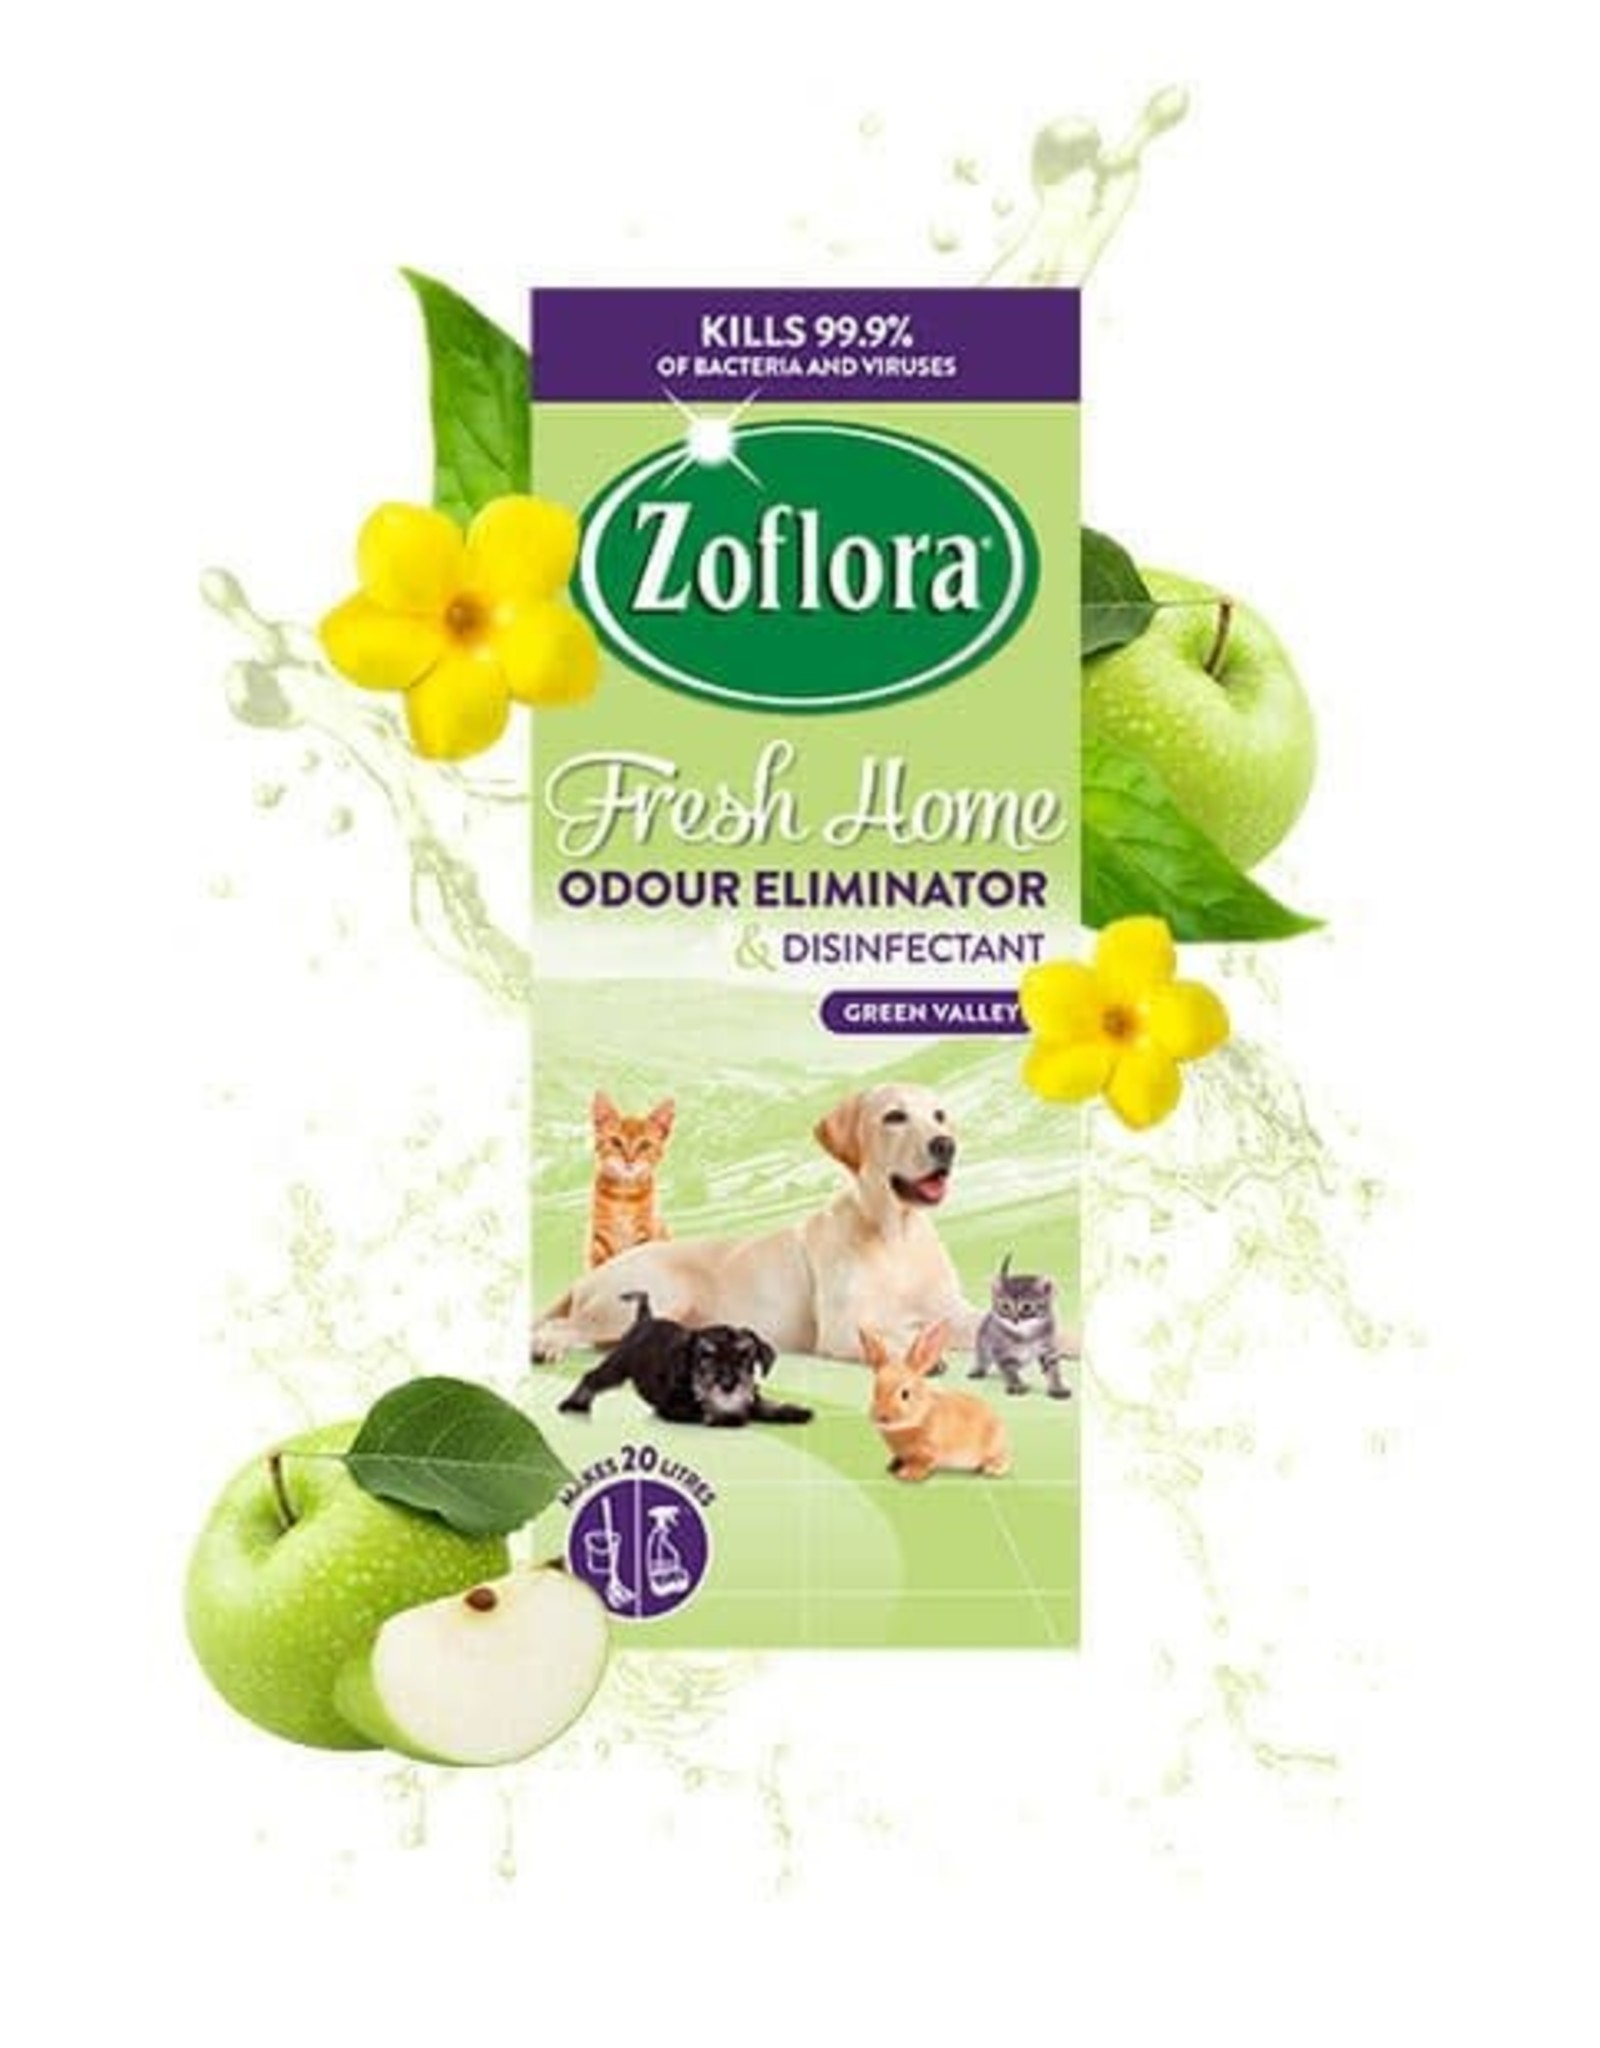 Zoflora Odour Remover & Disinfectant Green Valley Fragrance 500ml